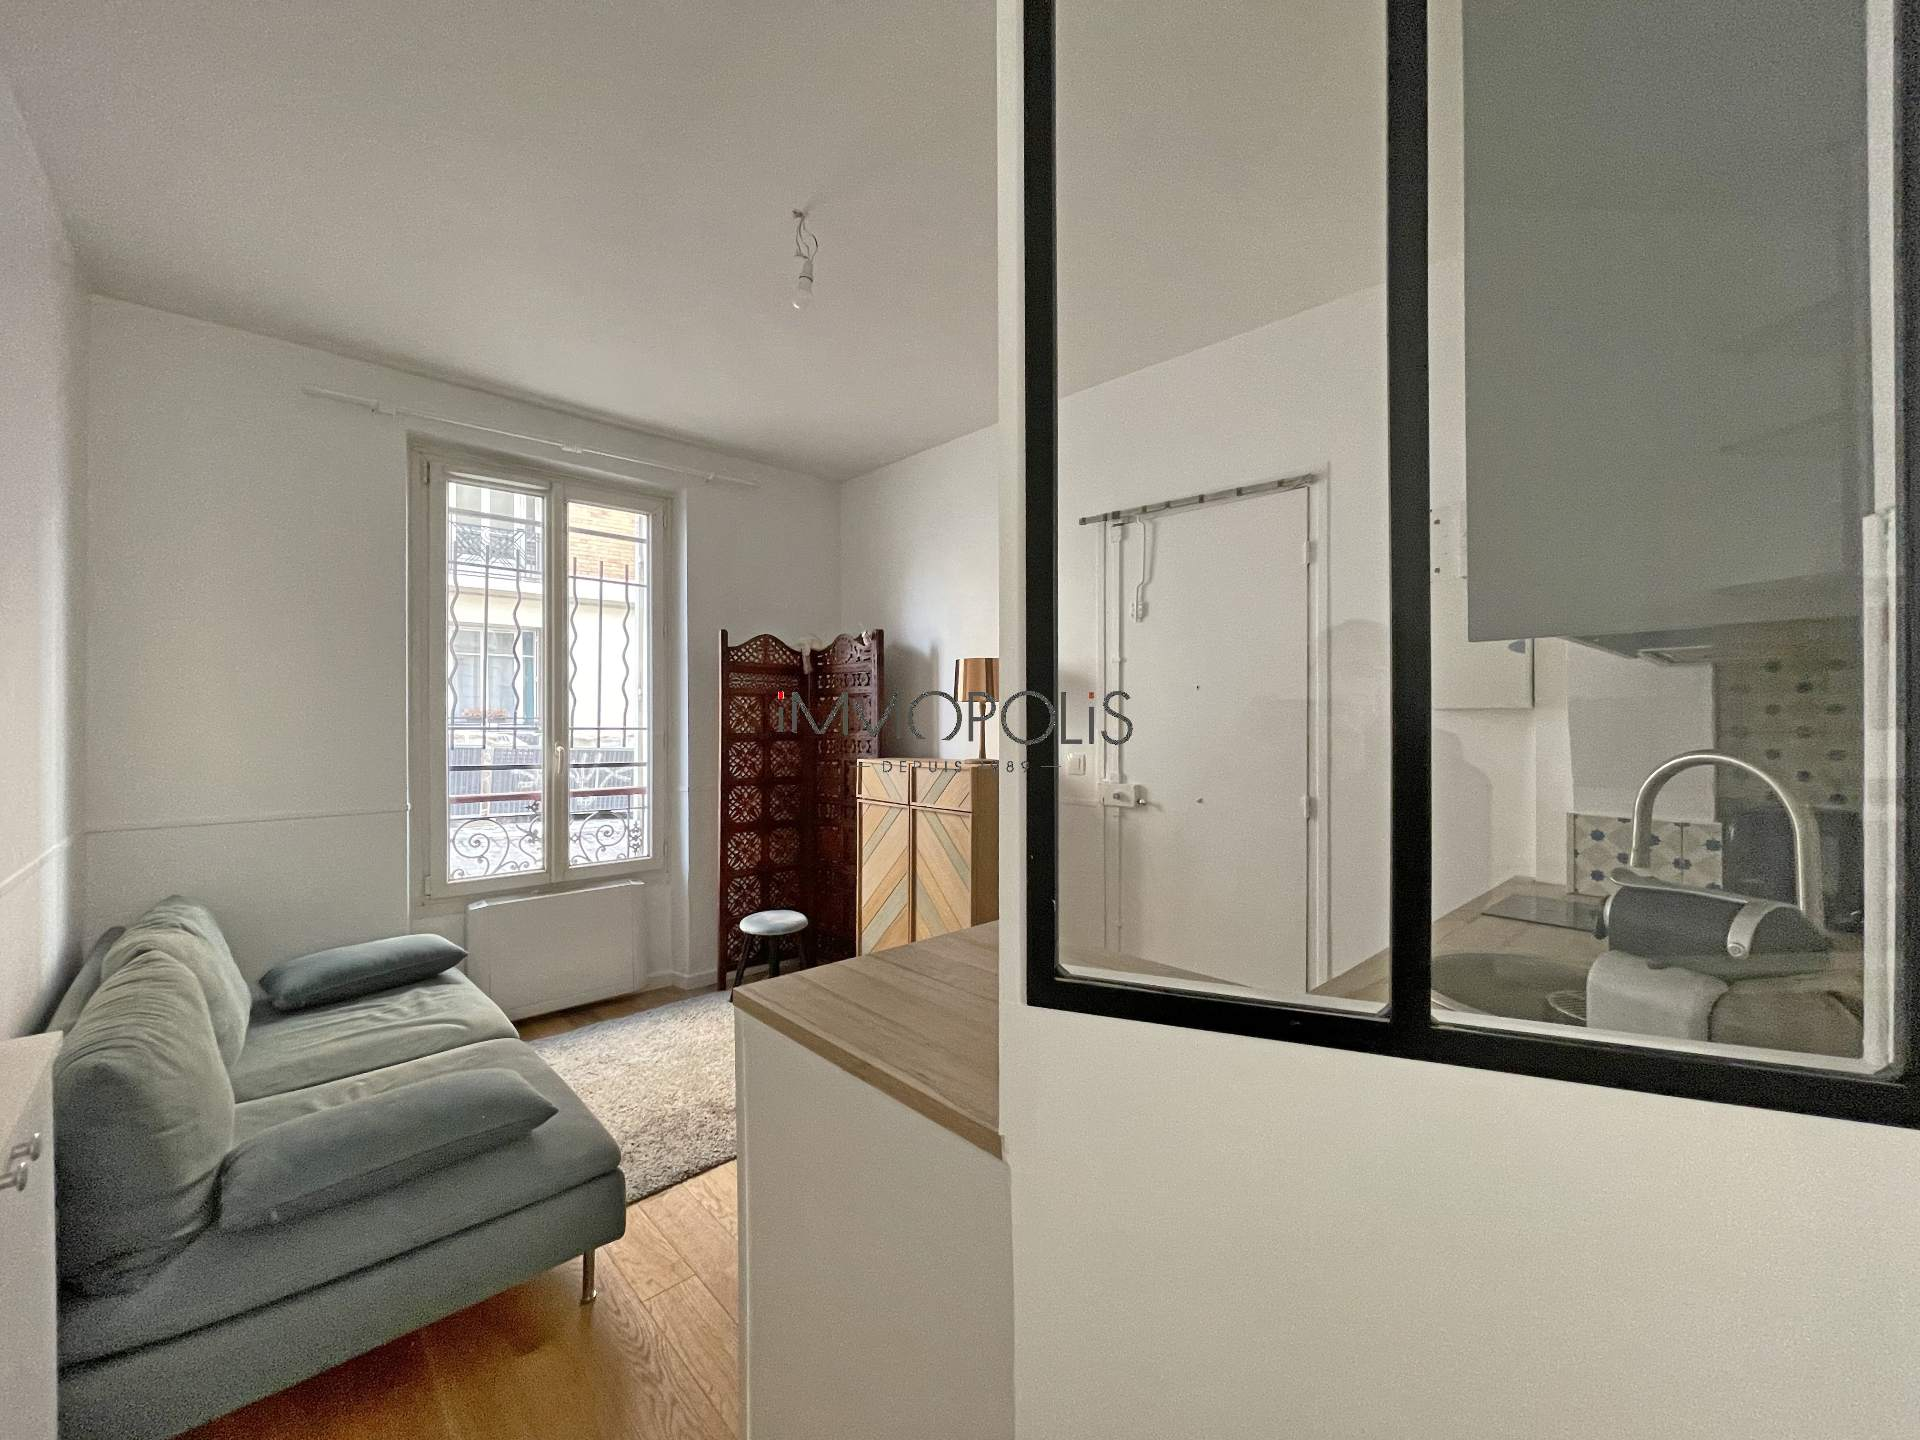 2 charming duplex rooms in Montmartre, rue Gabrielle 1